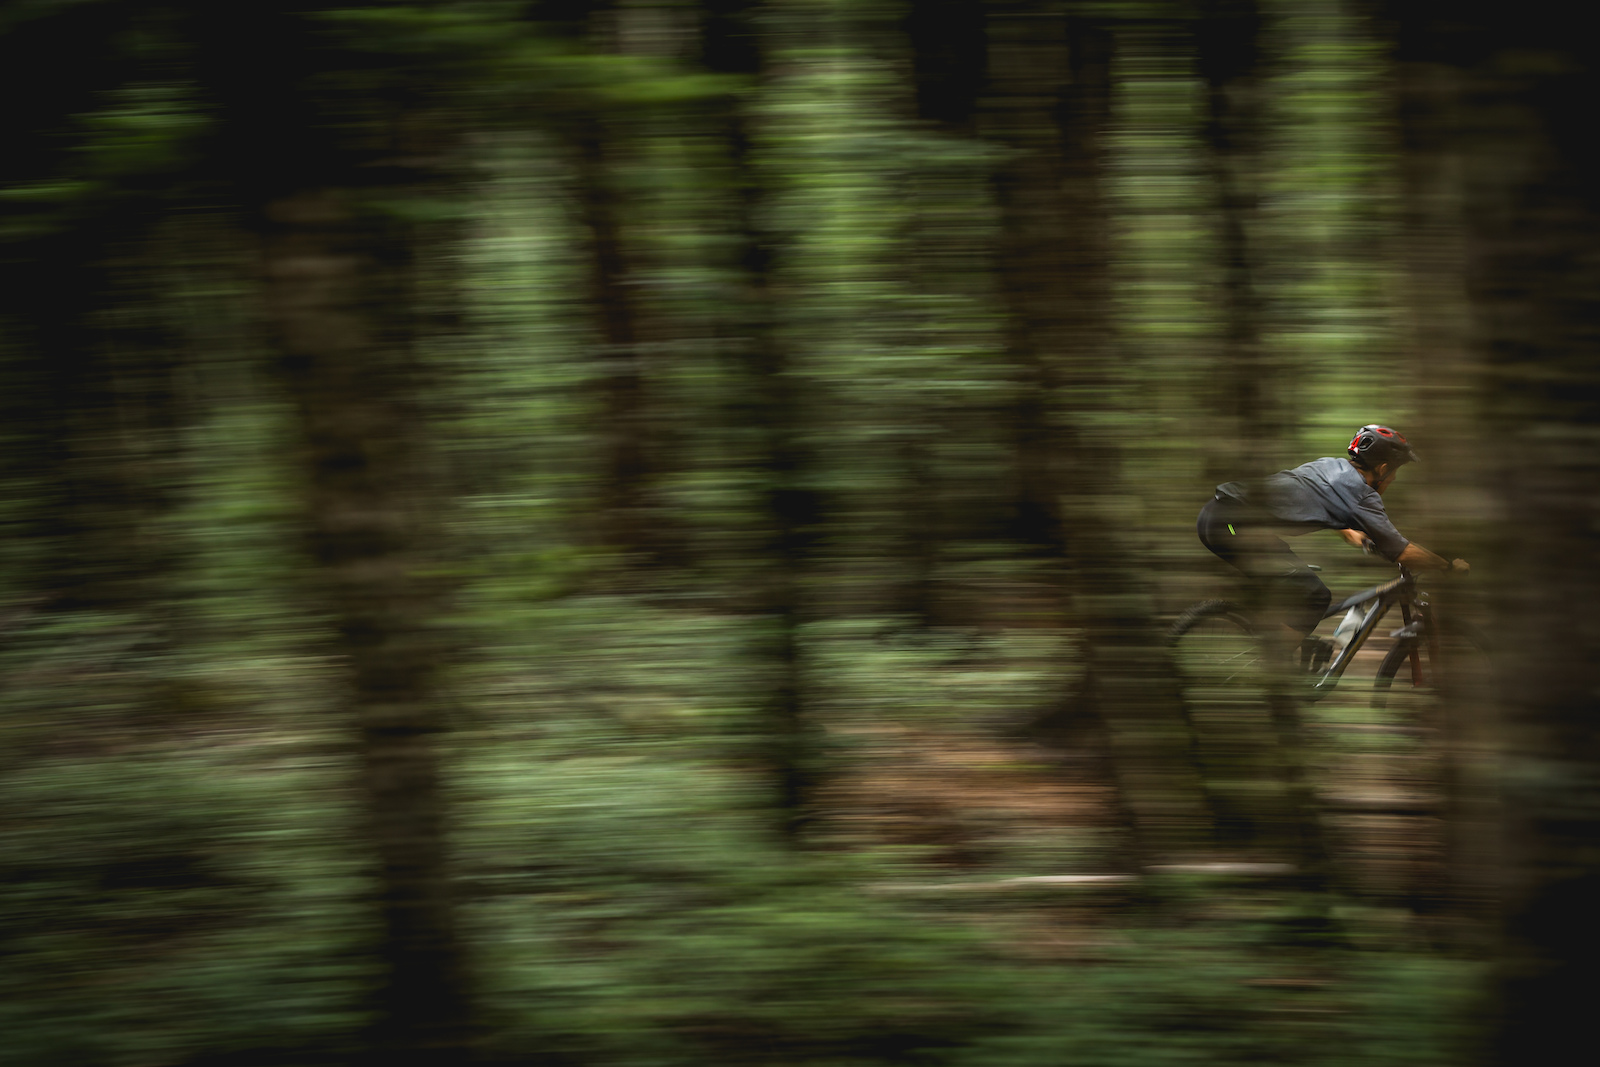 Sam Blenkinsop riding DEITY s new 35mm Carbon Skywire Bar while filming for there latest video